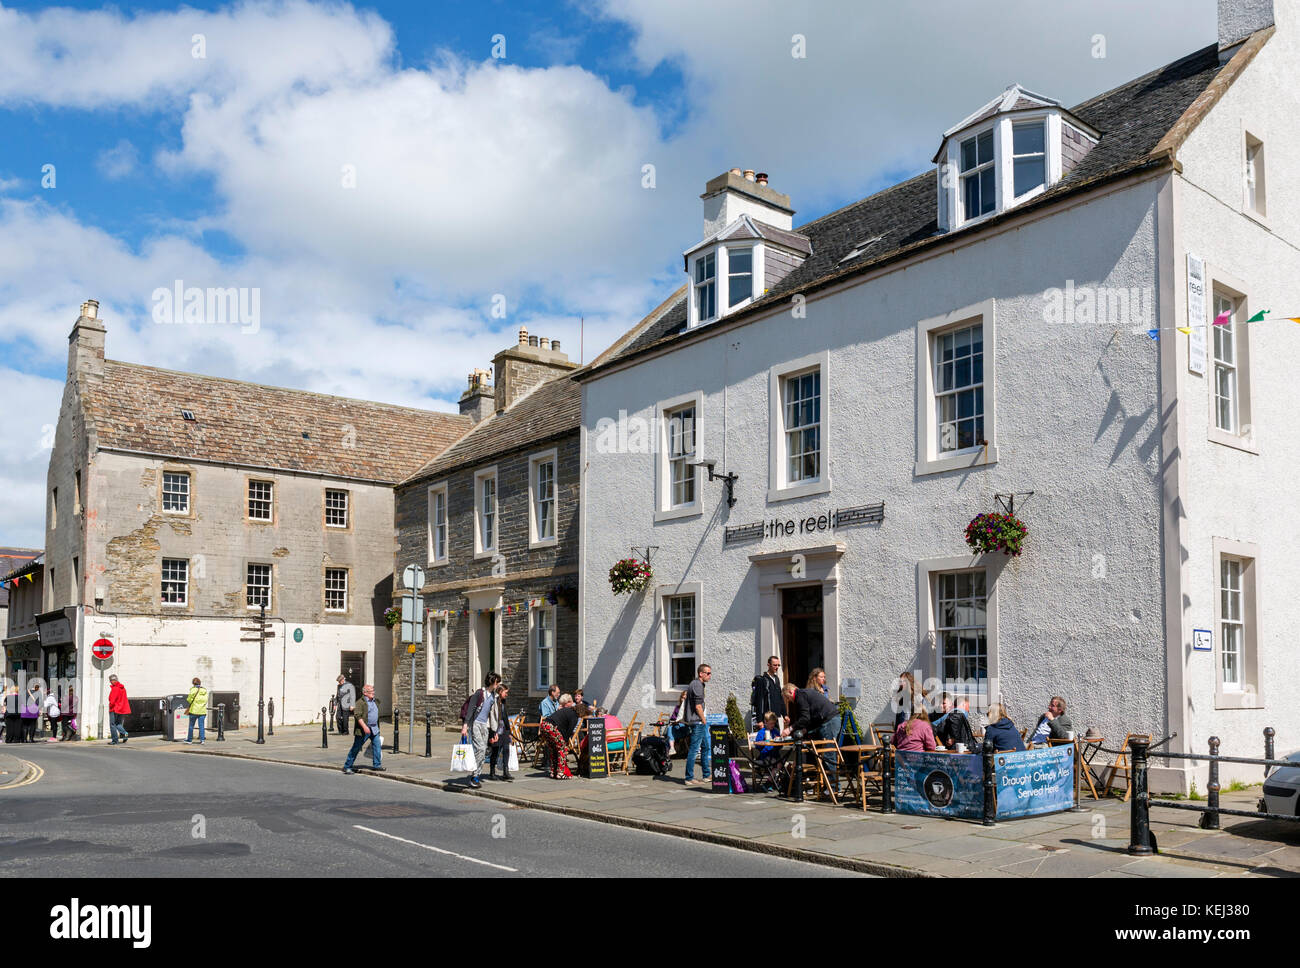 The Reel cafe on Broad Street in the town centre, Kirkwall, Mainland, Orkney, Scotland, UK - Stock Image